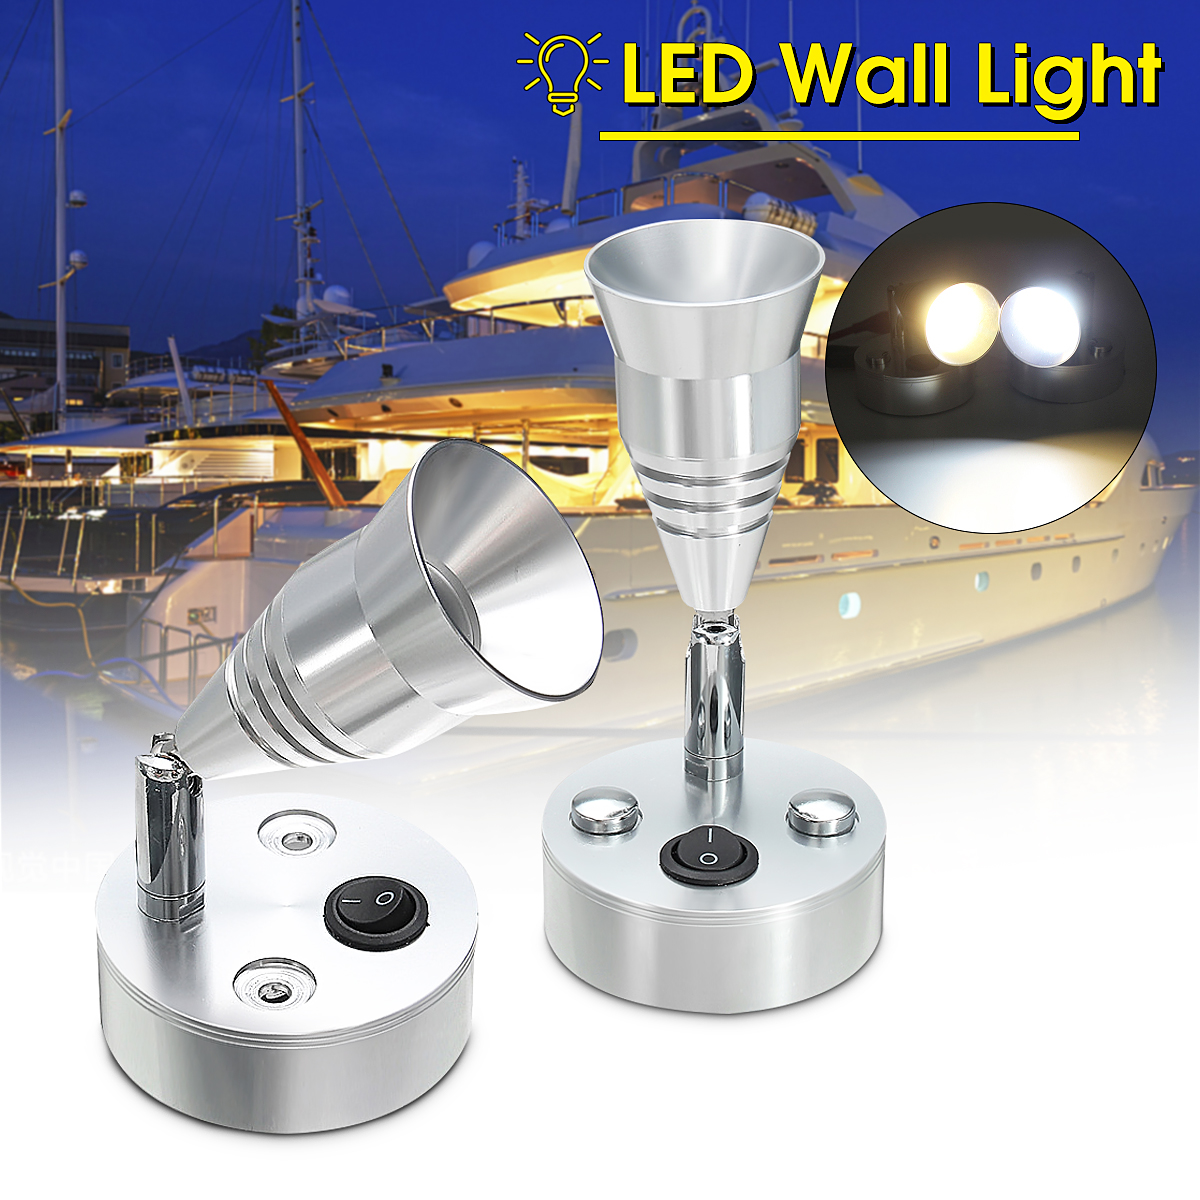 [해외]Autoleader LED 침대 옆 독서등 램프 12V 3W AdjustableSwitch 요트 모터 홈 따뜻한 화이트 360 용 캐러밴 / 트럭/Autoleader LED Bedside Reading Light Lamp 12V 3W AdjustableSwitc